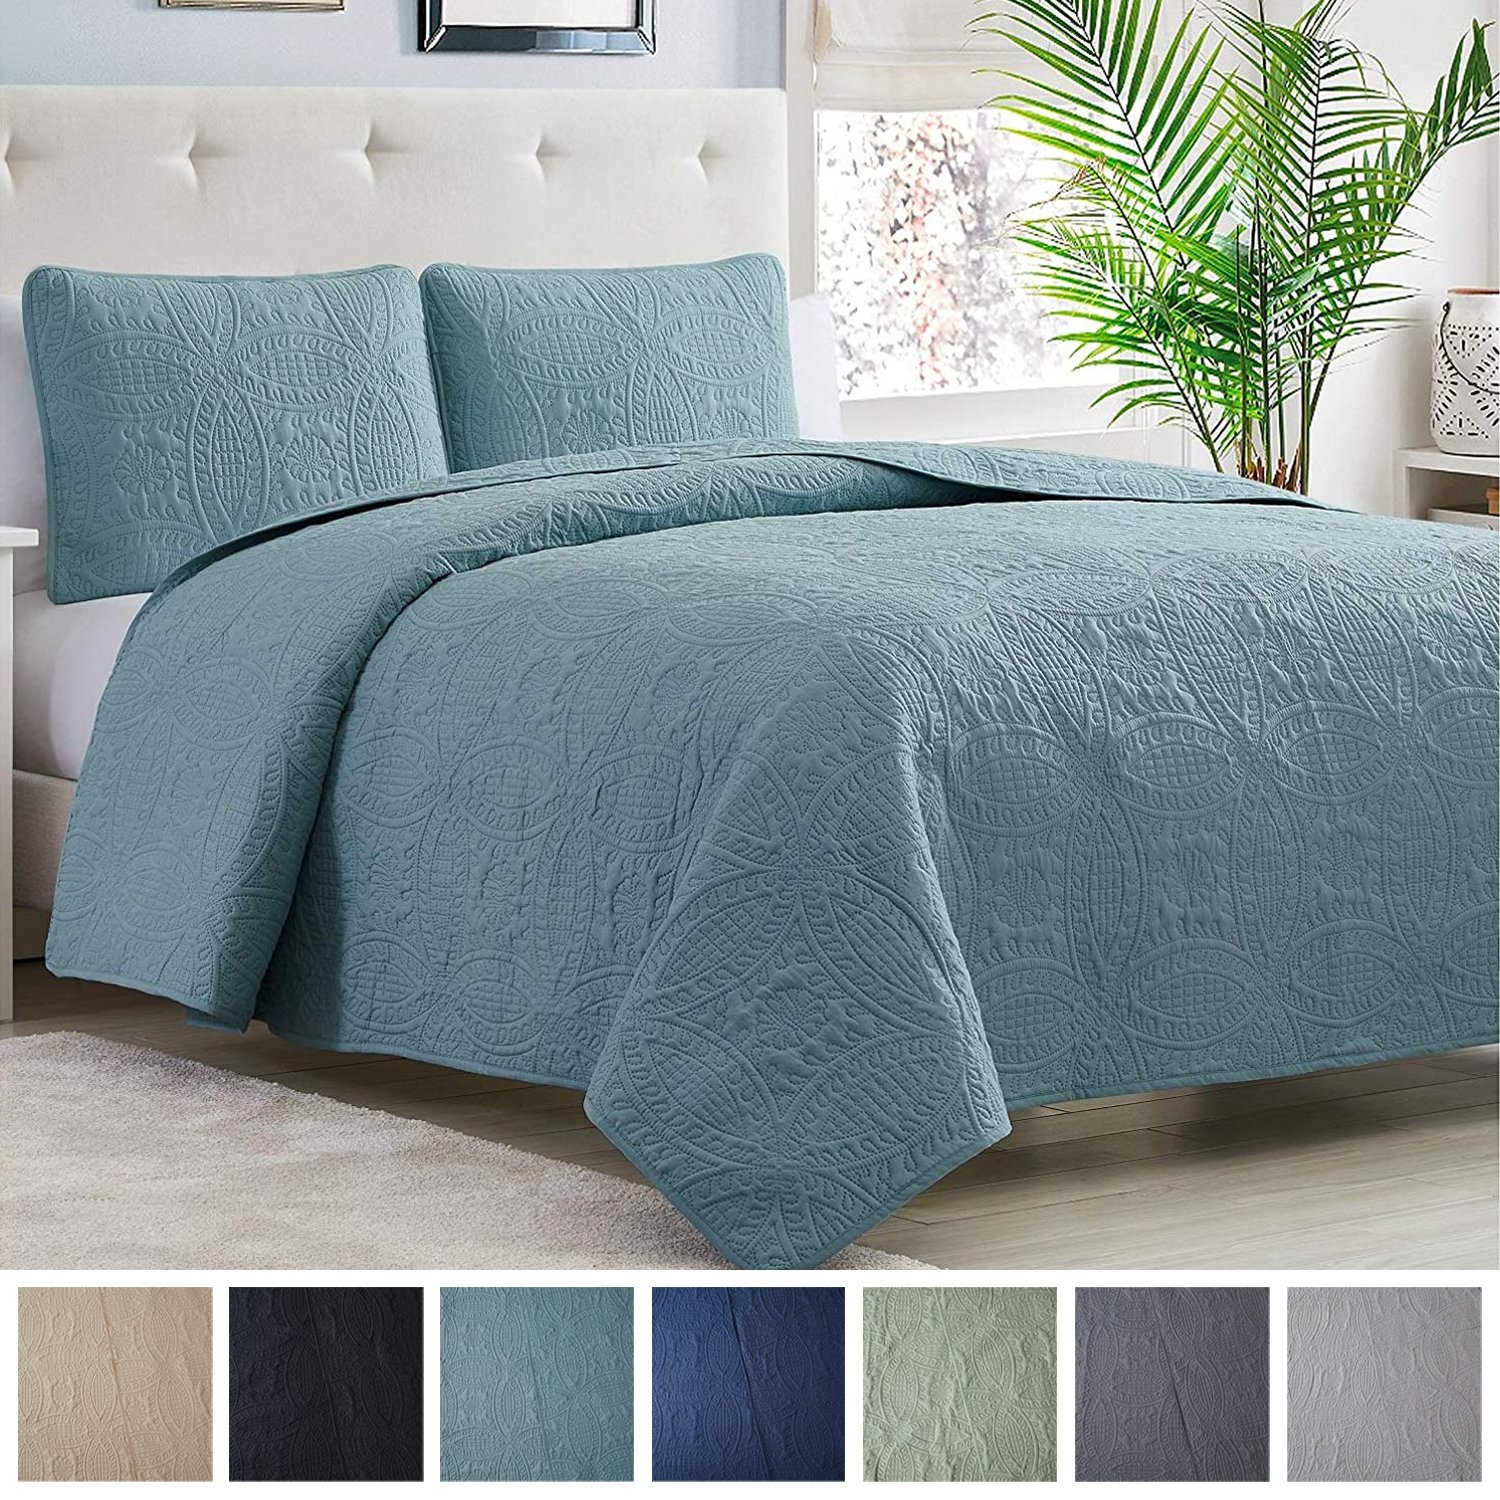 Pinsonic Quilted Austin Oversize Bedspread Coverlet 3-piece Set Turquoise